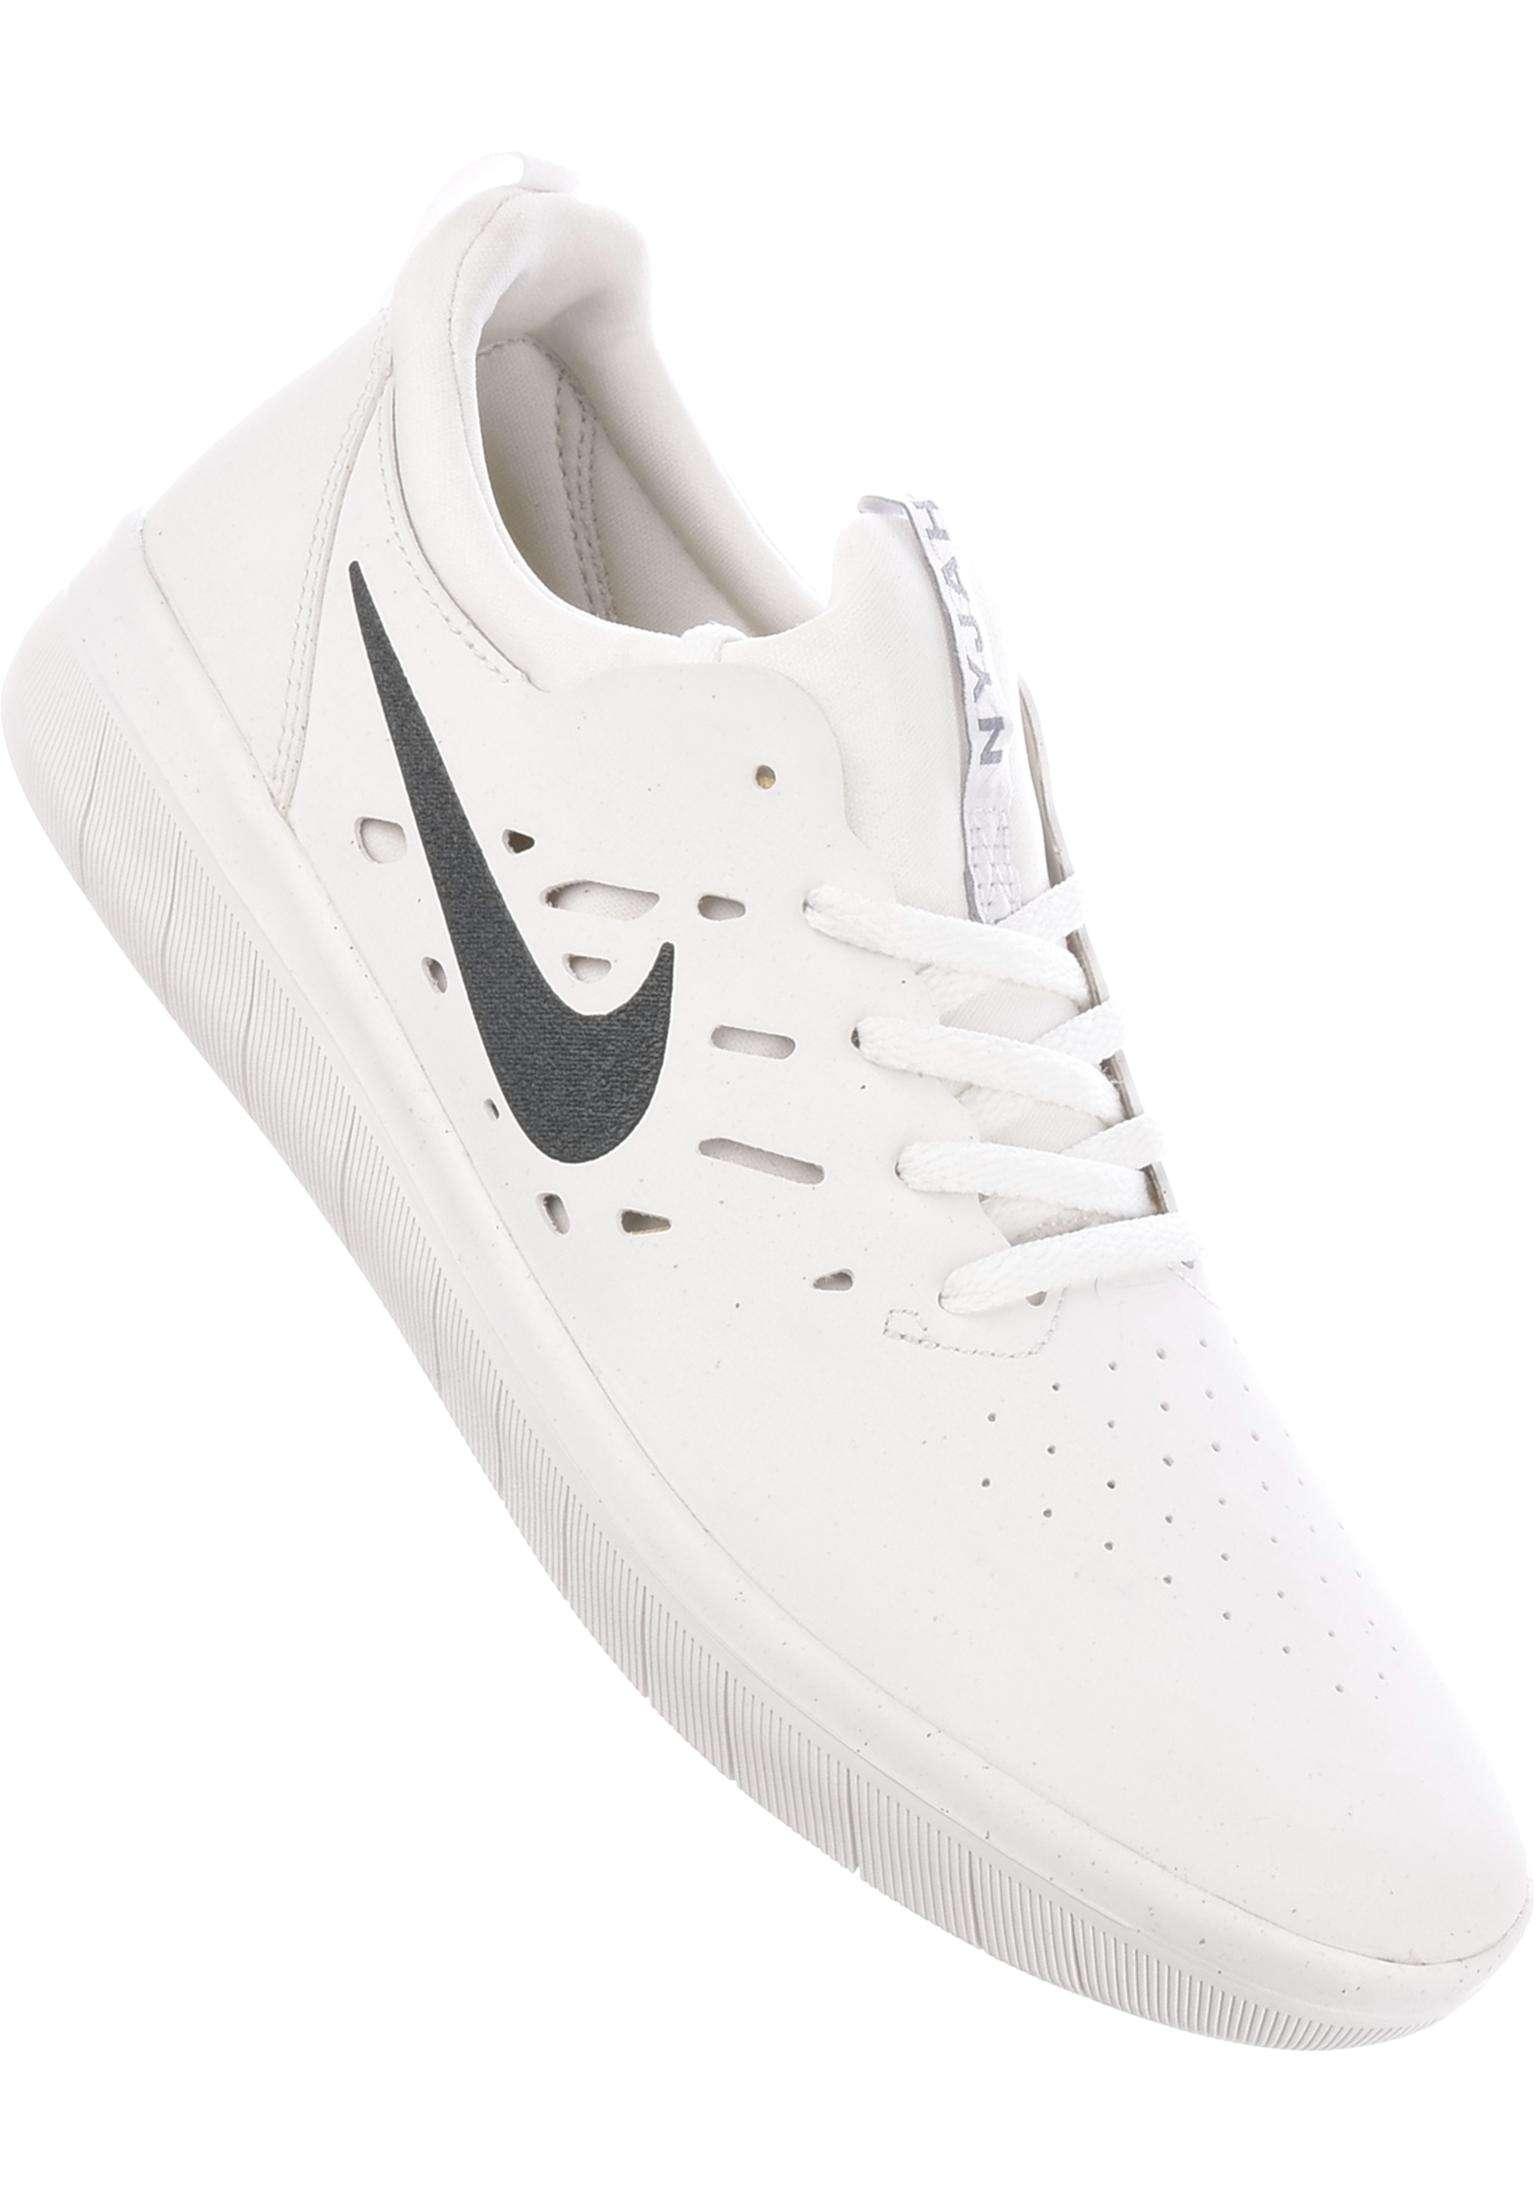 first rate 08aa7 7e240 Nyjah Free Skateboarding Nike SB Alle Schoenen in summitwhite-anthracite  voor Heren   Titus